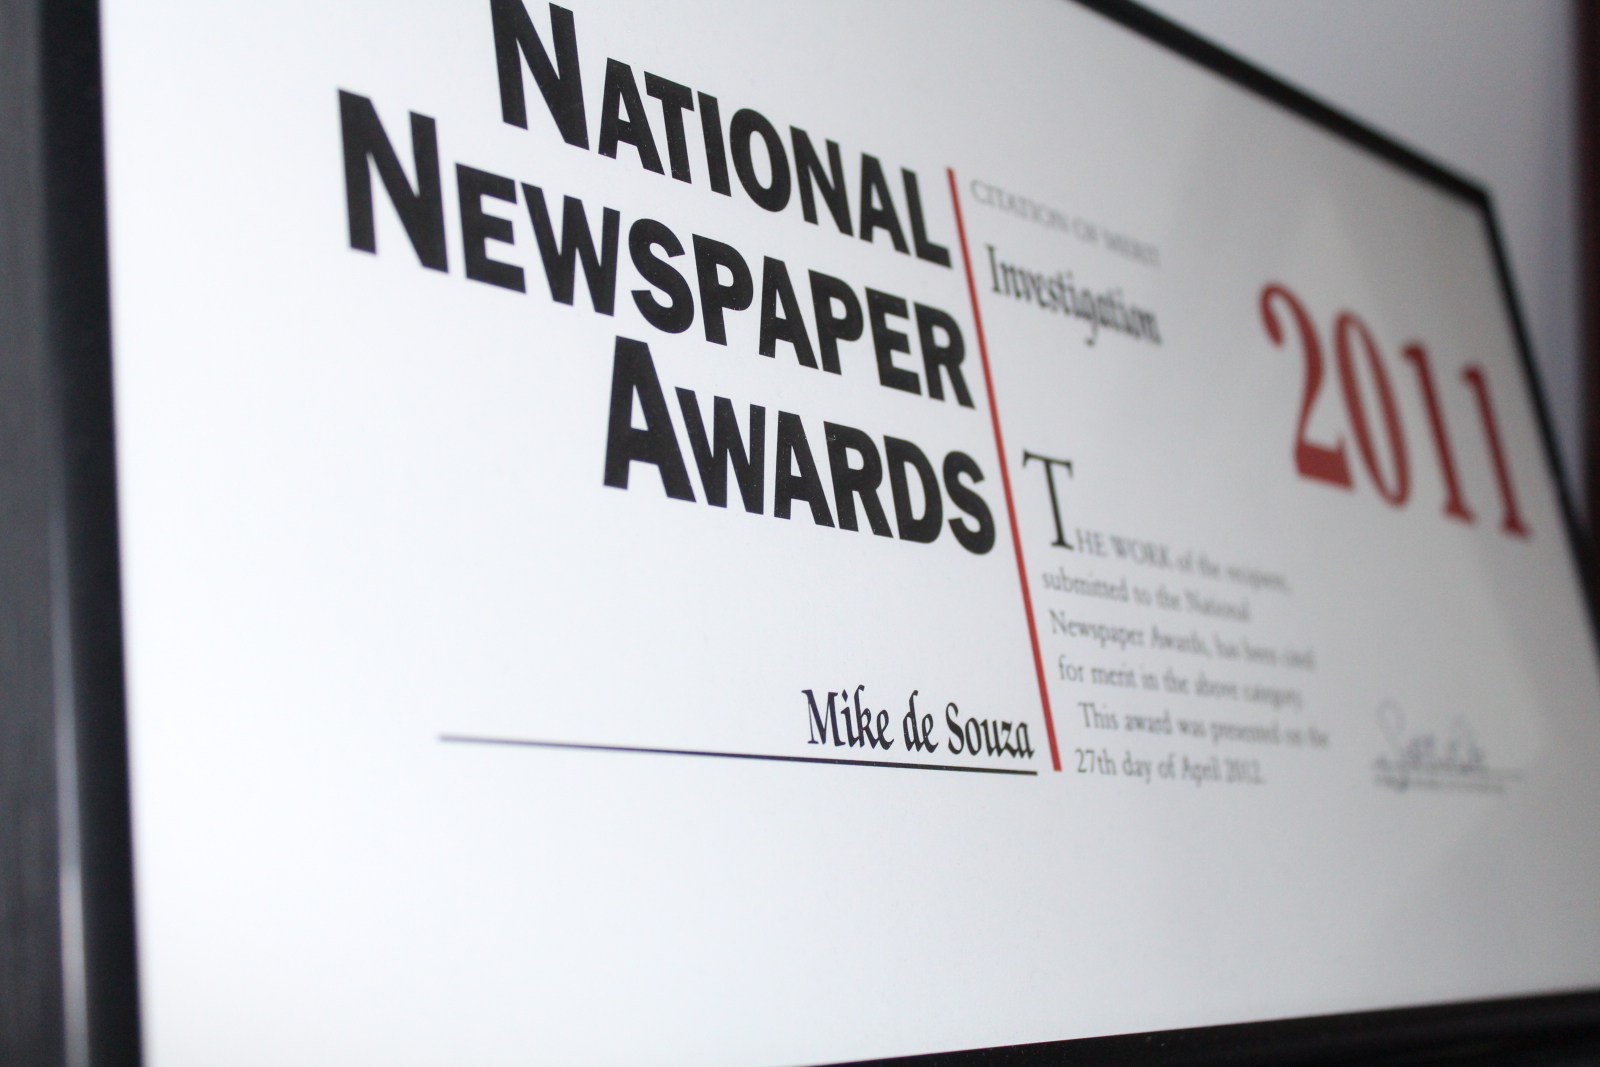 Mike De Souza, National Newspaper Awards, 2011, Friends of Science